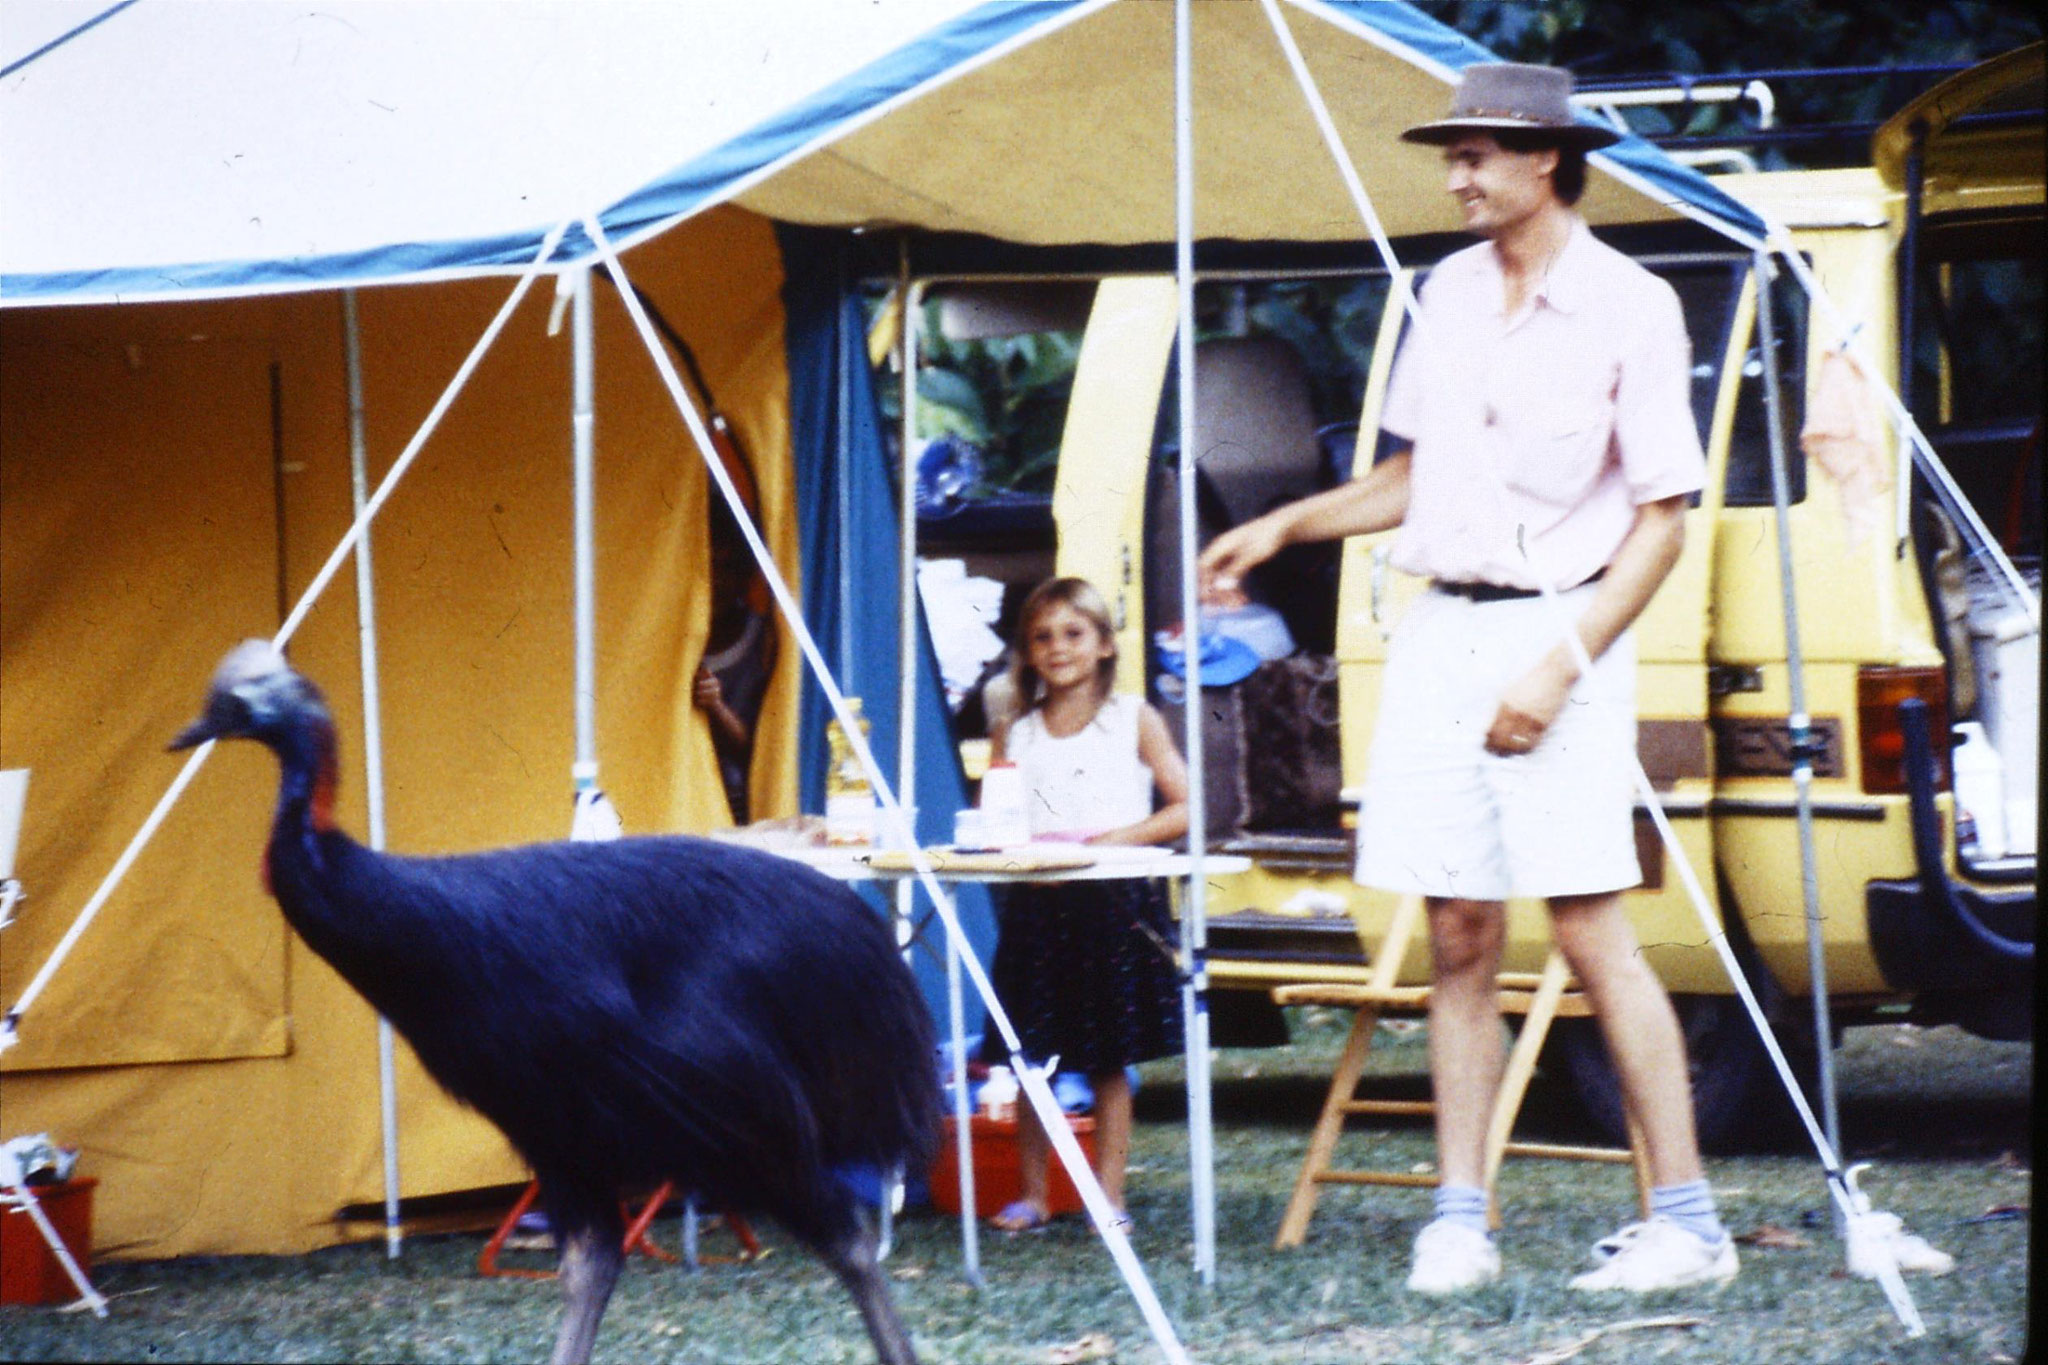 29/10/1990: 8: Mission Beach, cassowary & campers